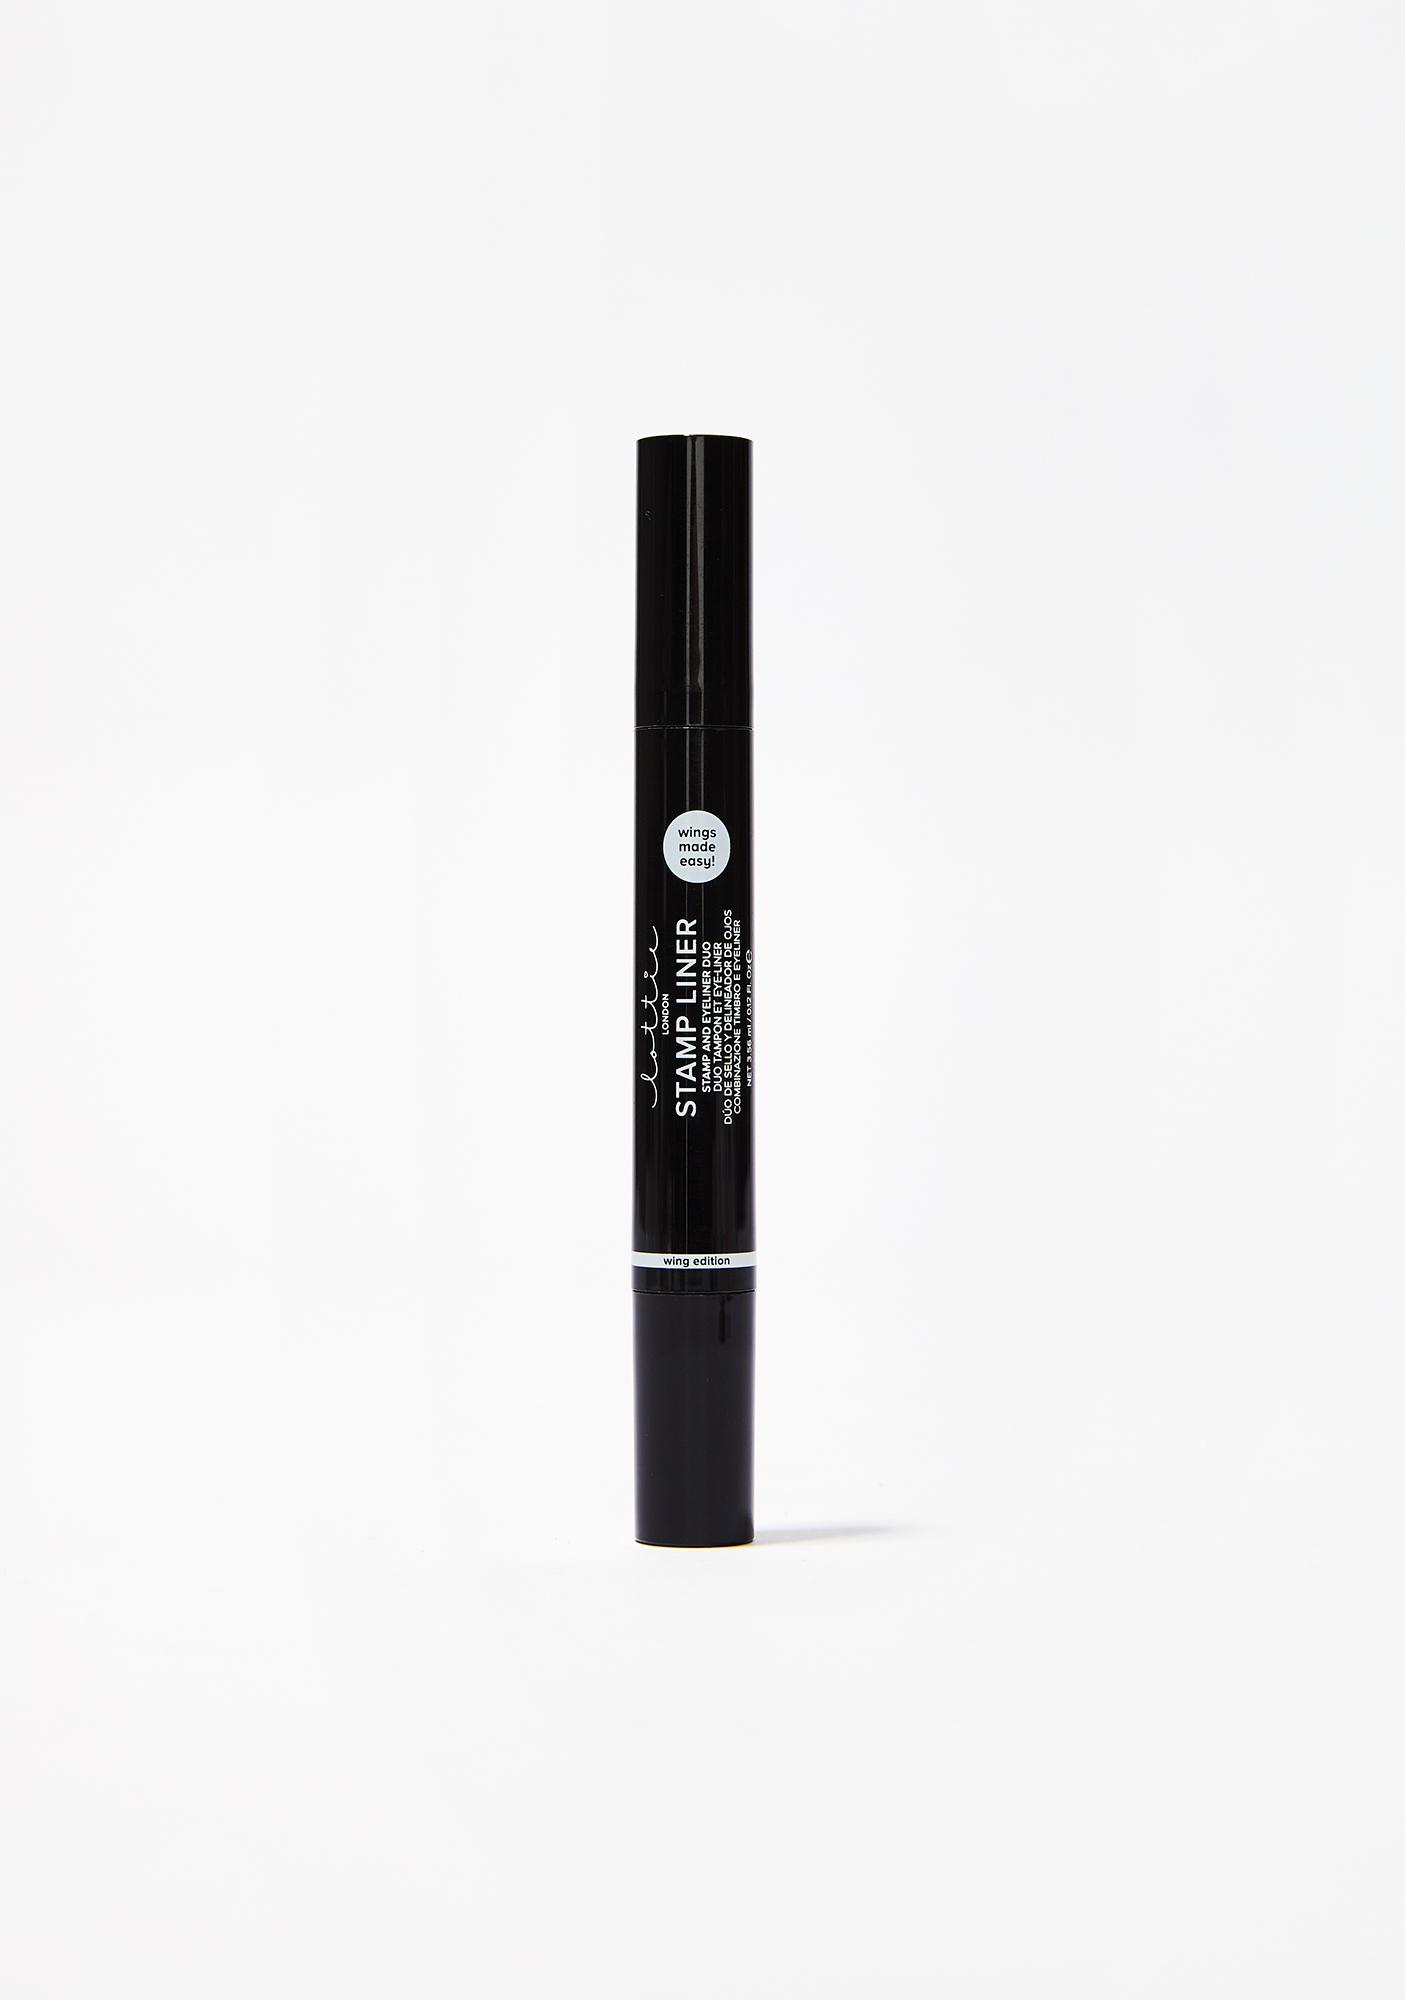 Lottie London Wing Edition Stamp Liner